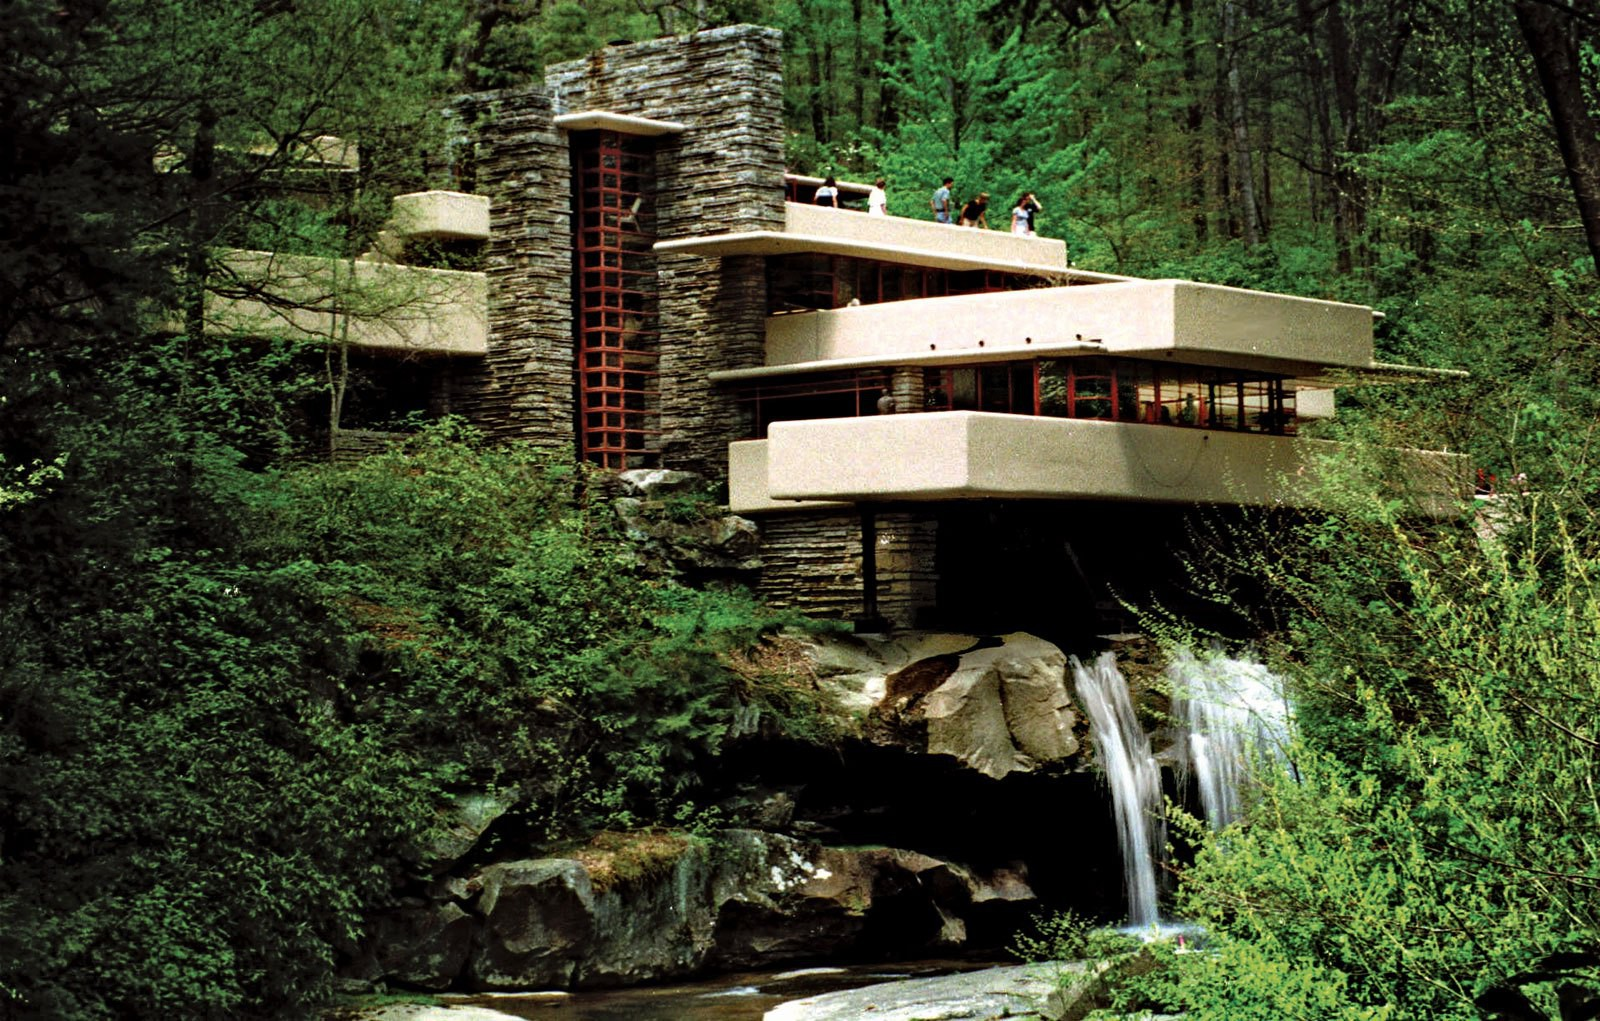 What were hearing frank lloyd wright houses shortlisted for world heritage status